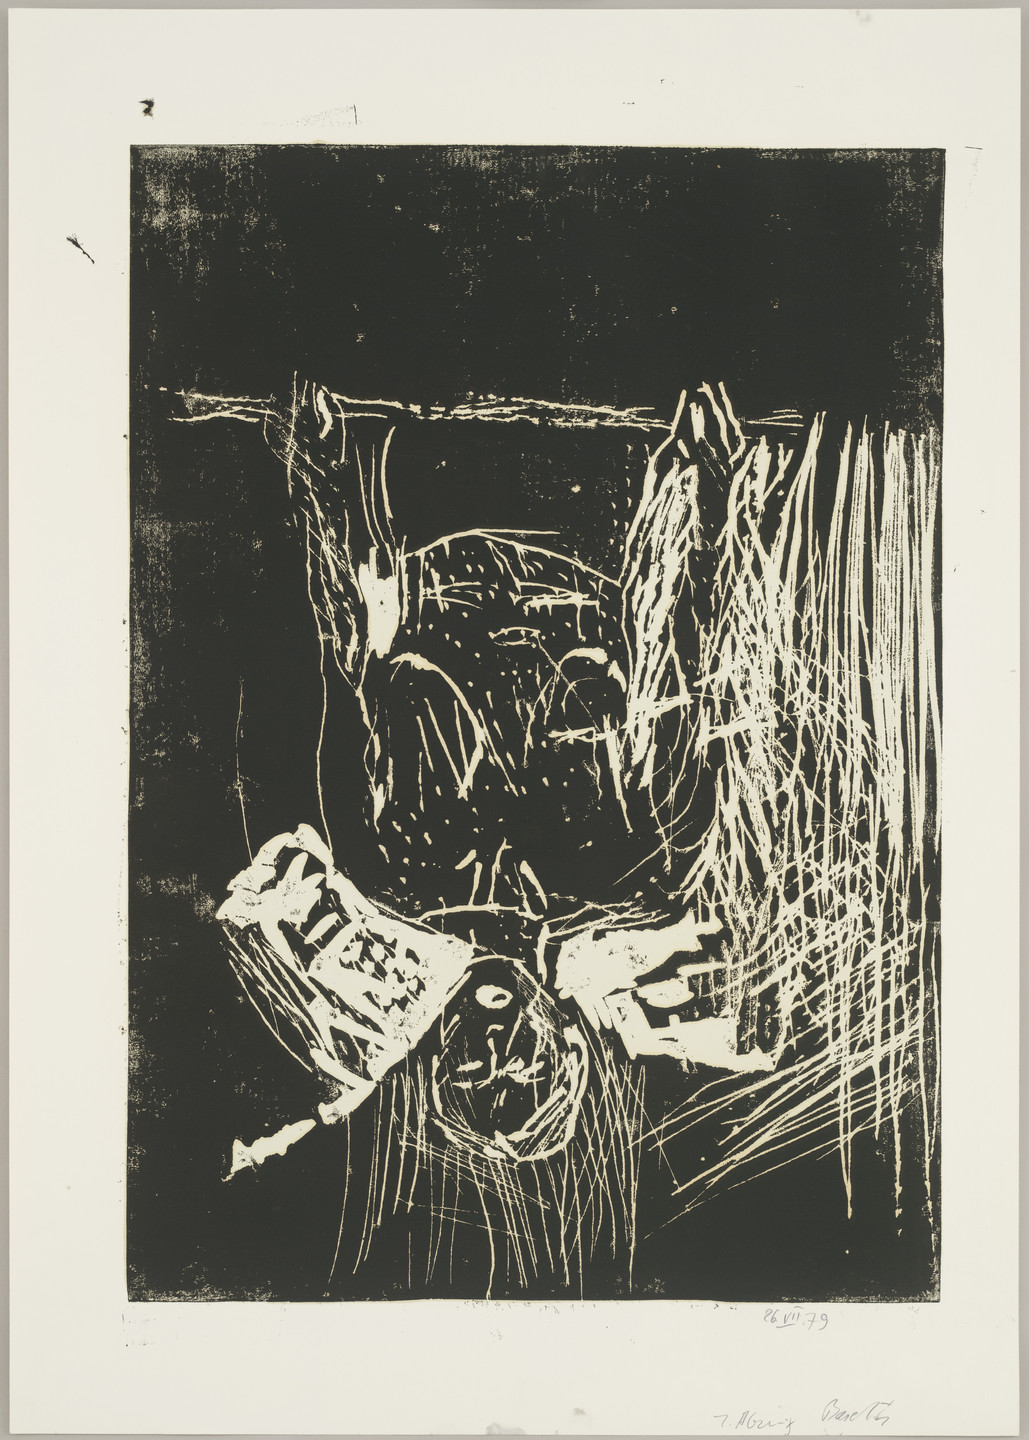 Georg Baselitz. Woman at the Window (Frau am Fenster), state I. 1979